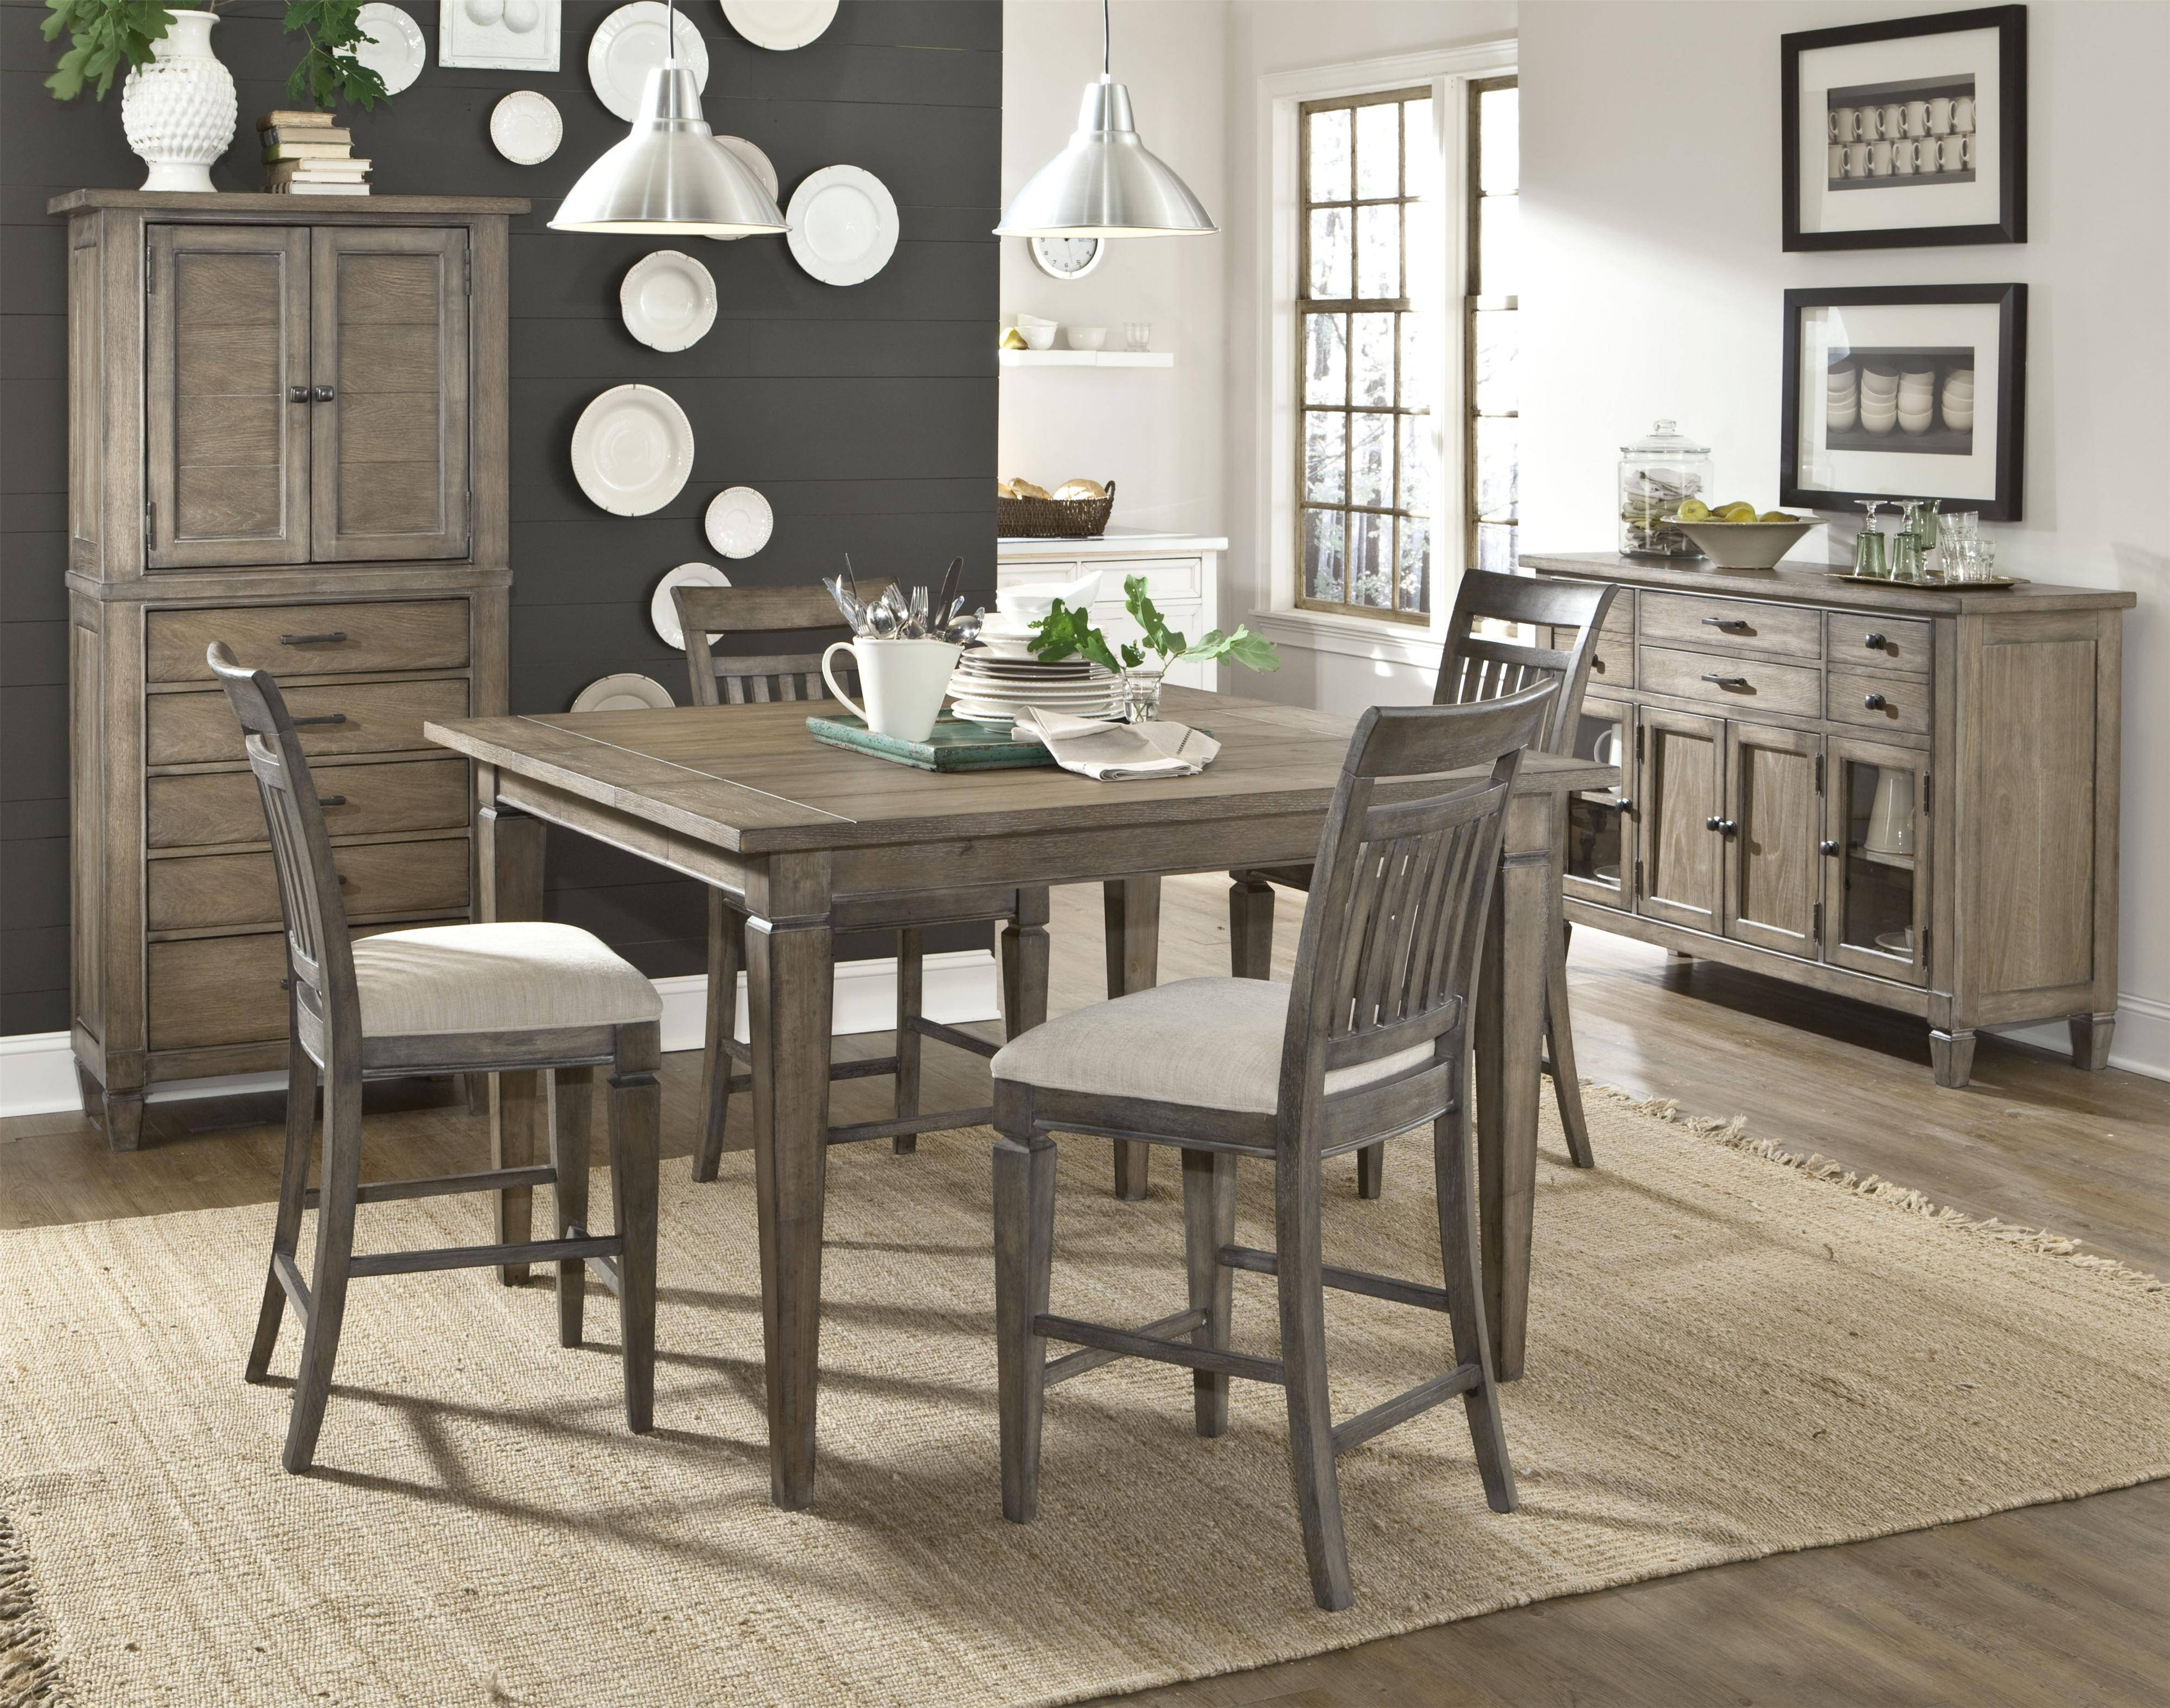 Peachy Dining Room Set Sideboard | Home Inspired 2018 throughout Dining Room Sets With Sideboards (Image 12 of 15)